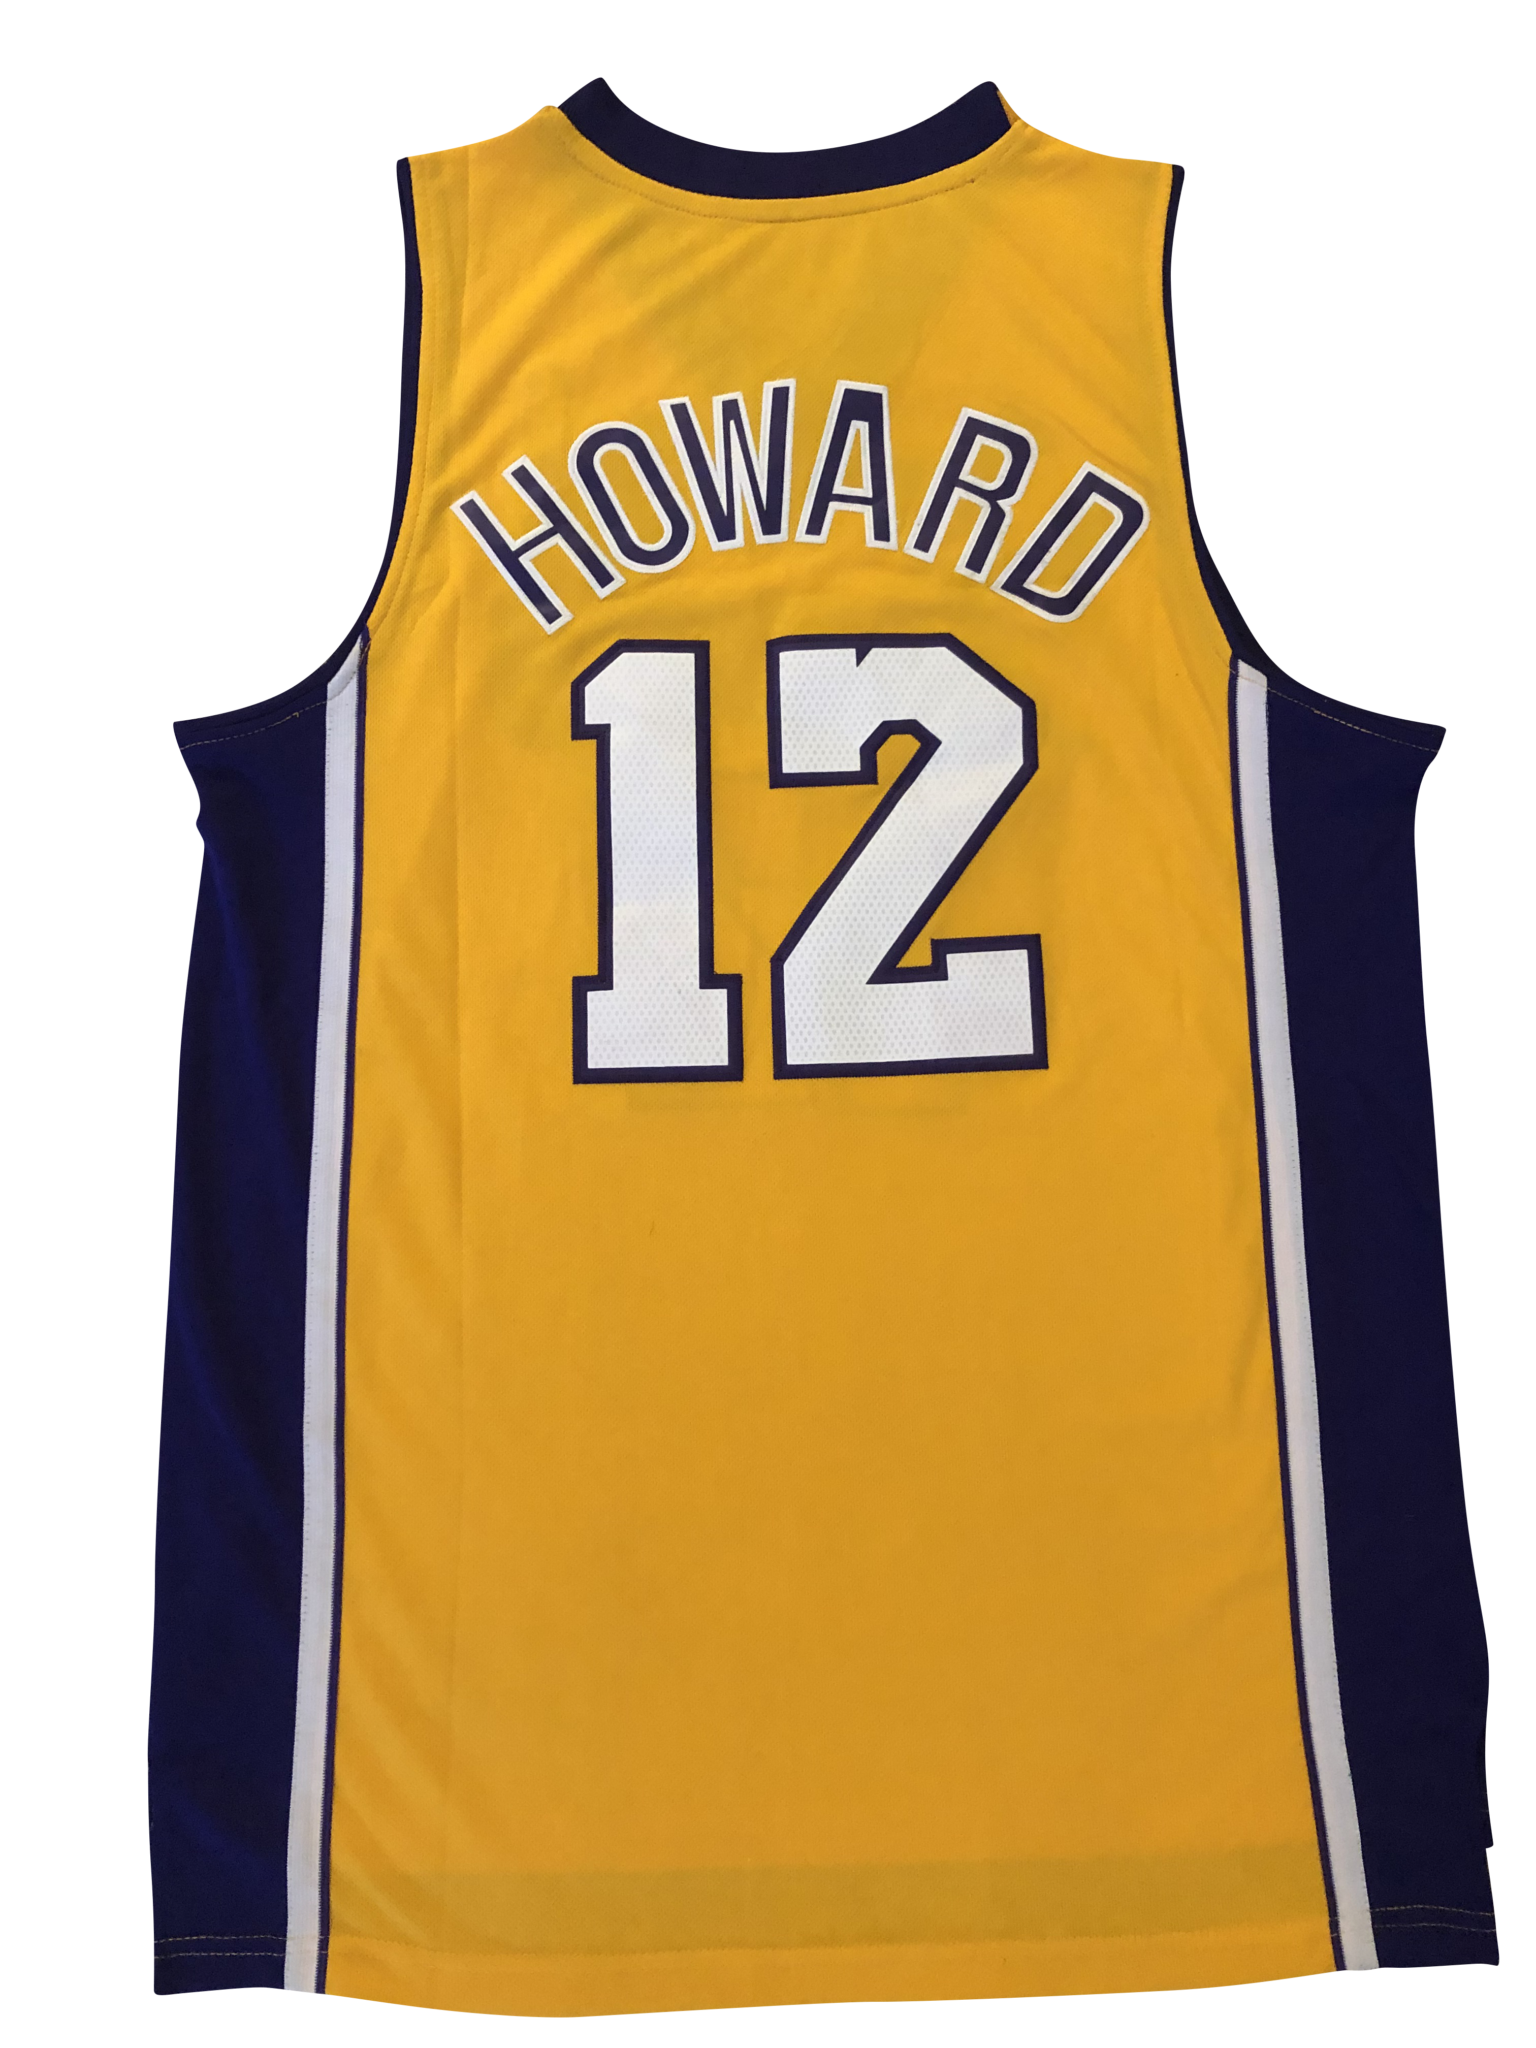 Activewear Tops New Adidas Swingman Dwight Howard 2014 Nba West All Star Replica Jersey #12 Fan Apparel & Souvenirs